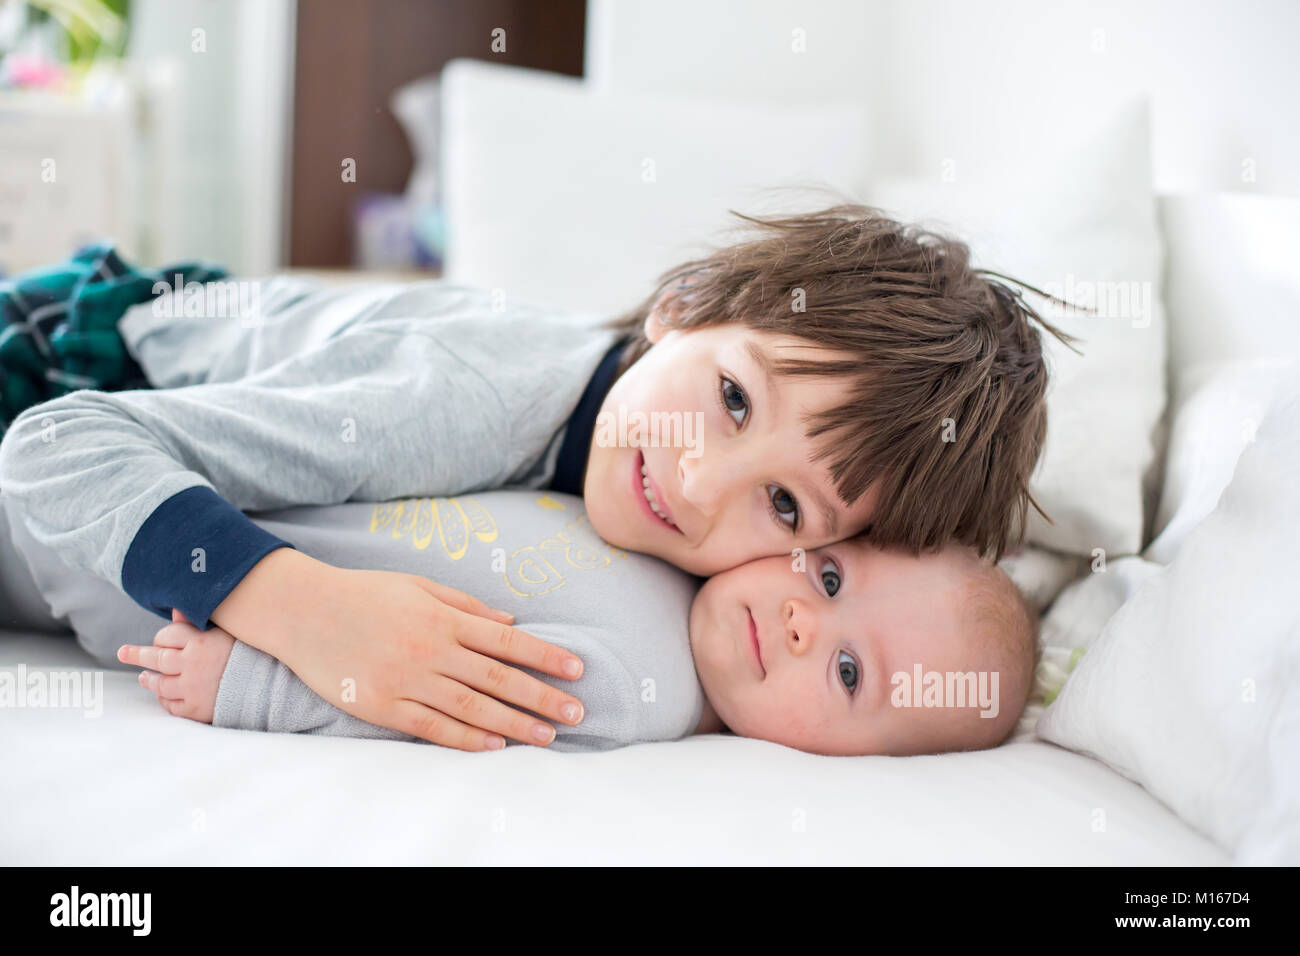 Two children, baby and his older brother in bed in the morning, playing together, laughing and having a good time, - Stock Image